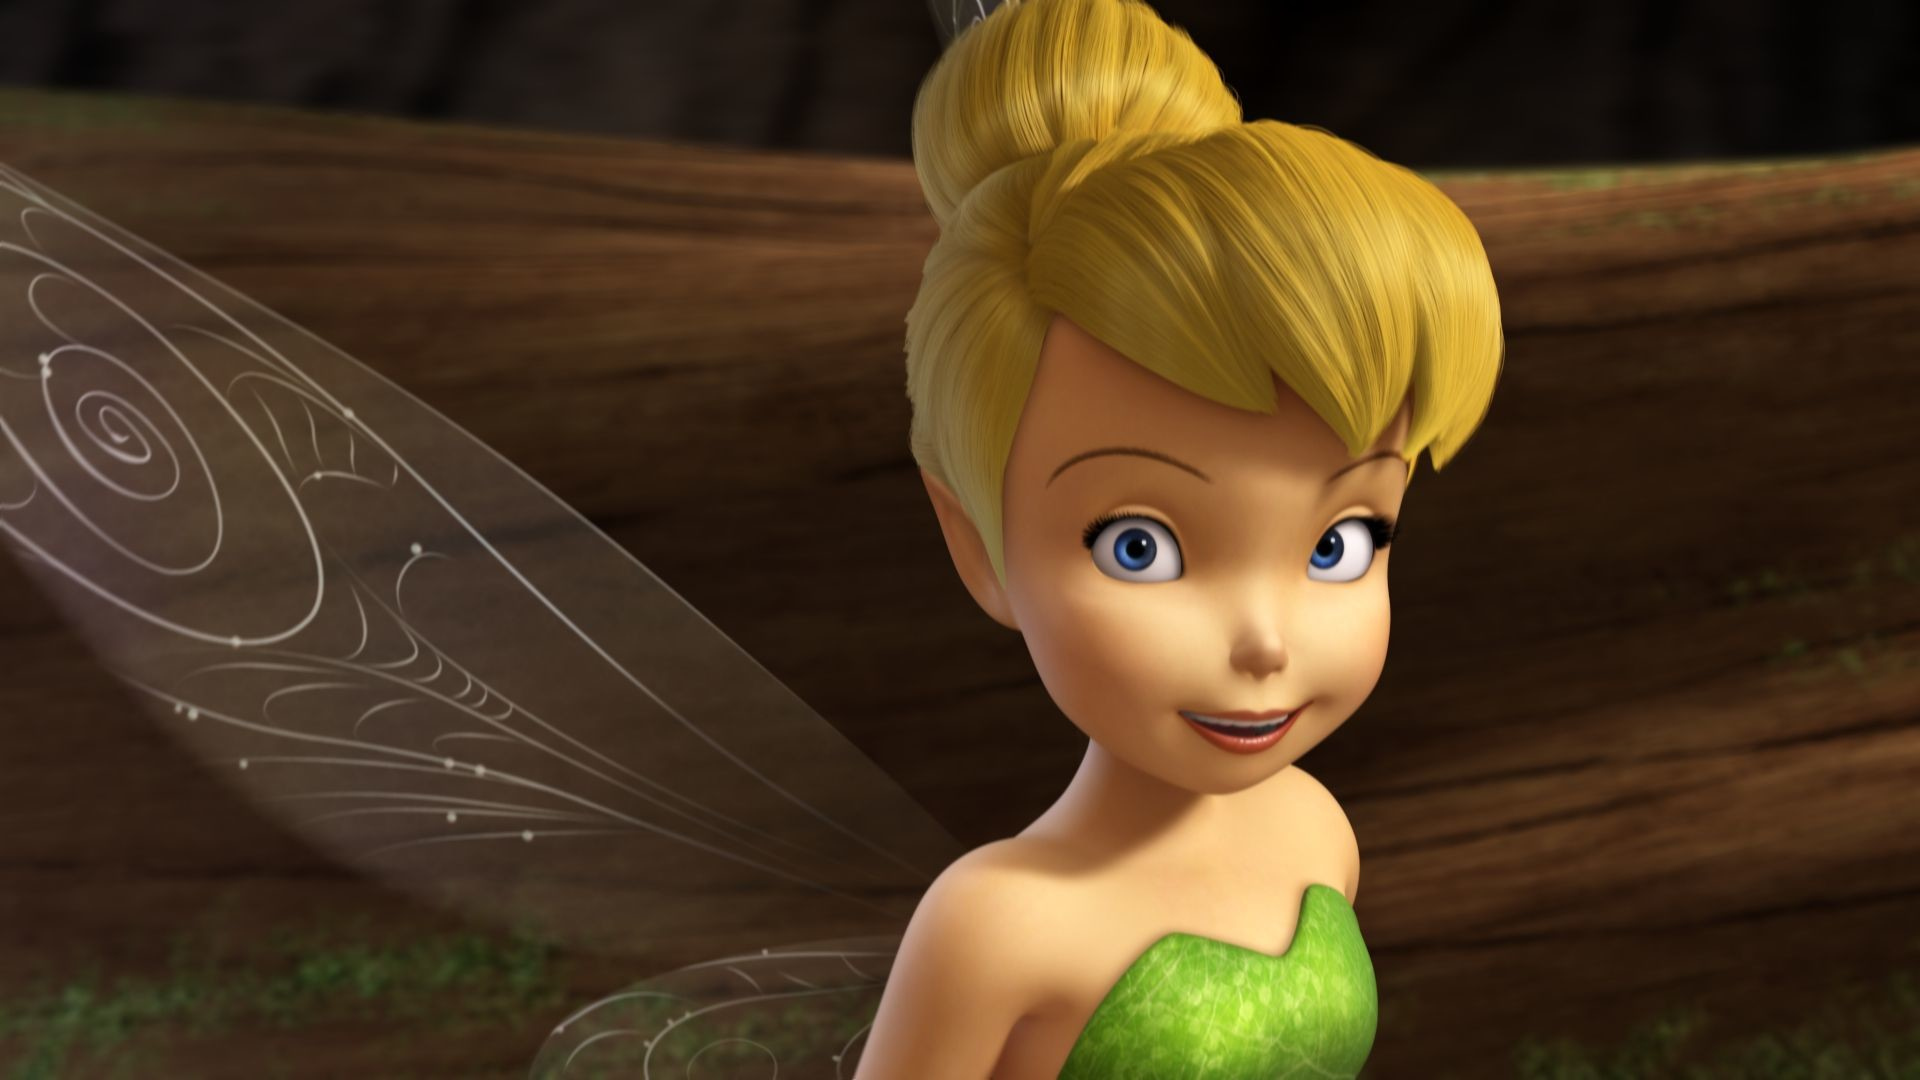 tinkerbell wallpaper for desktop 61 images